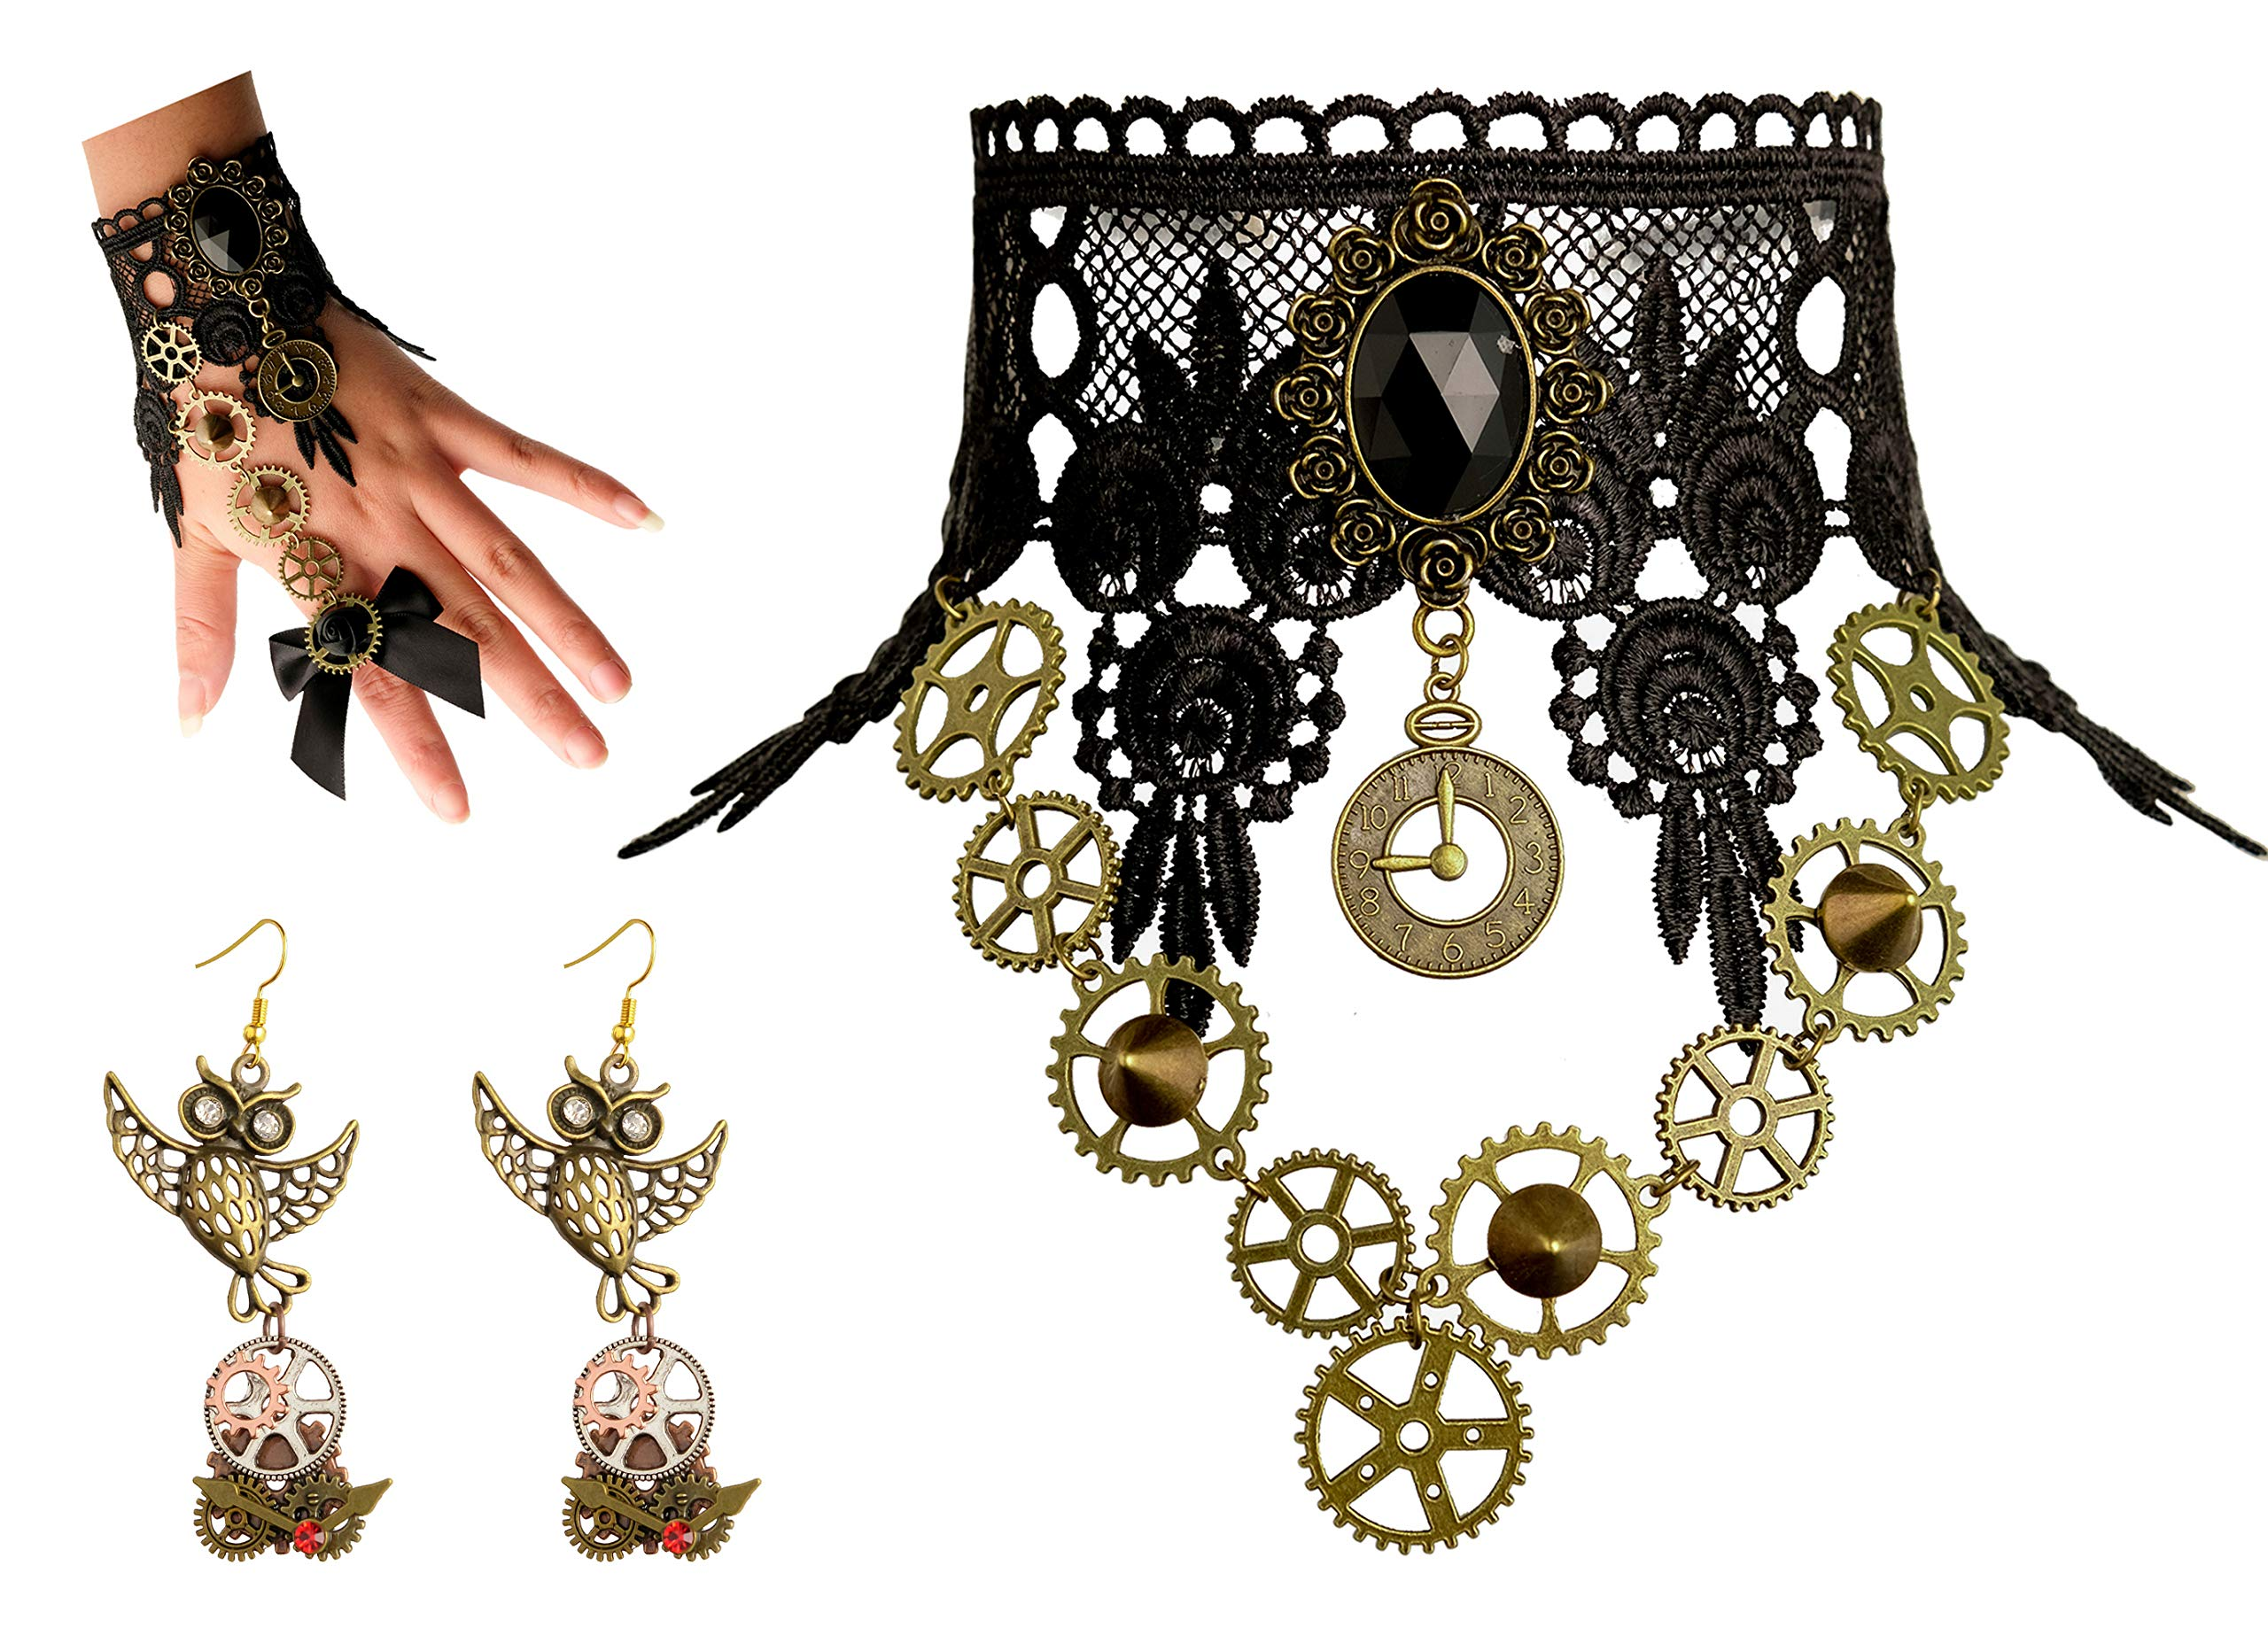 Zivyes Steampunk Accessories for Women Victorian Costume Gothic Lolita Choker Necklace Bracelet Earrings 3